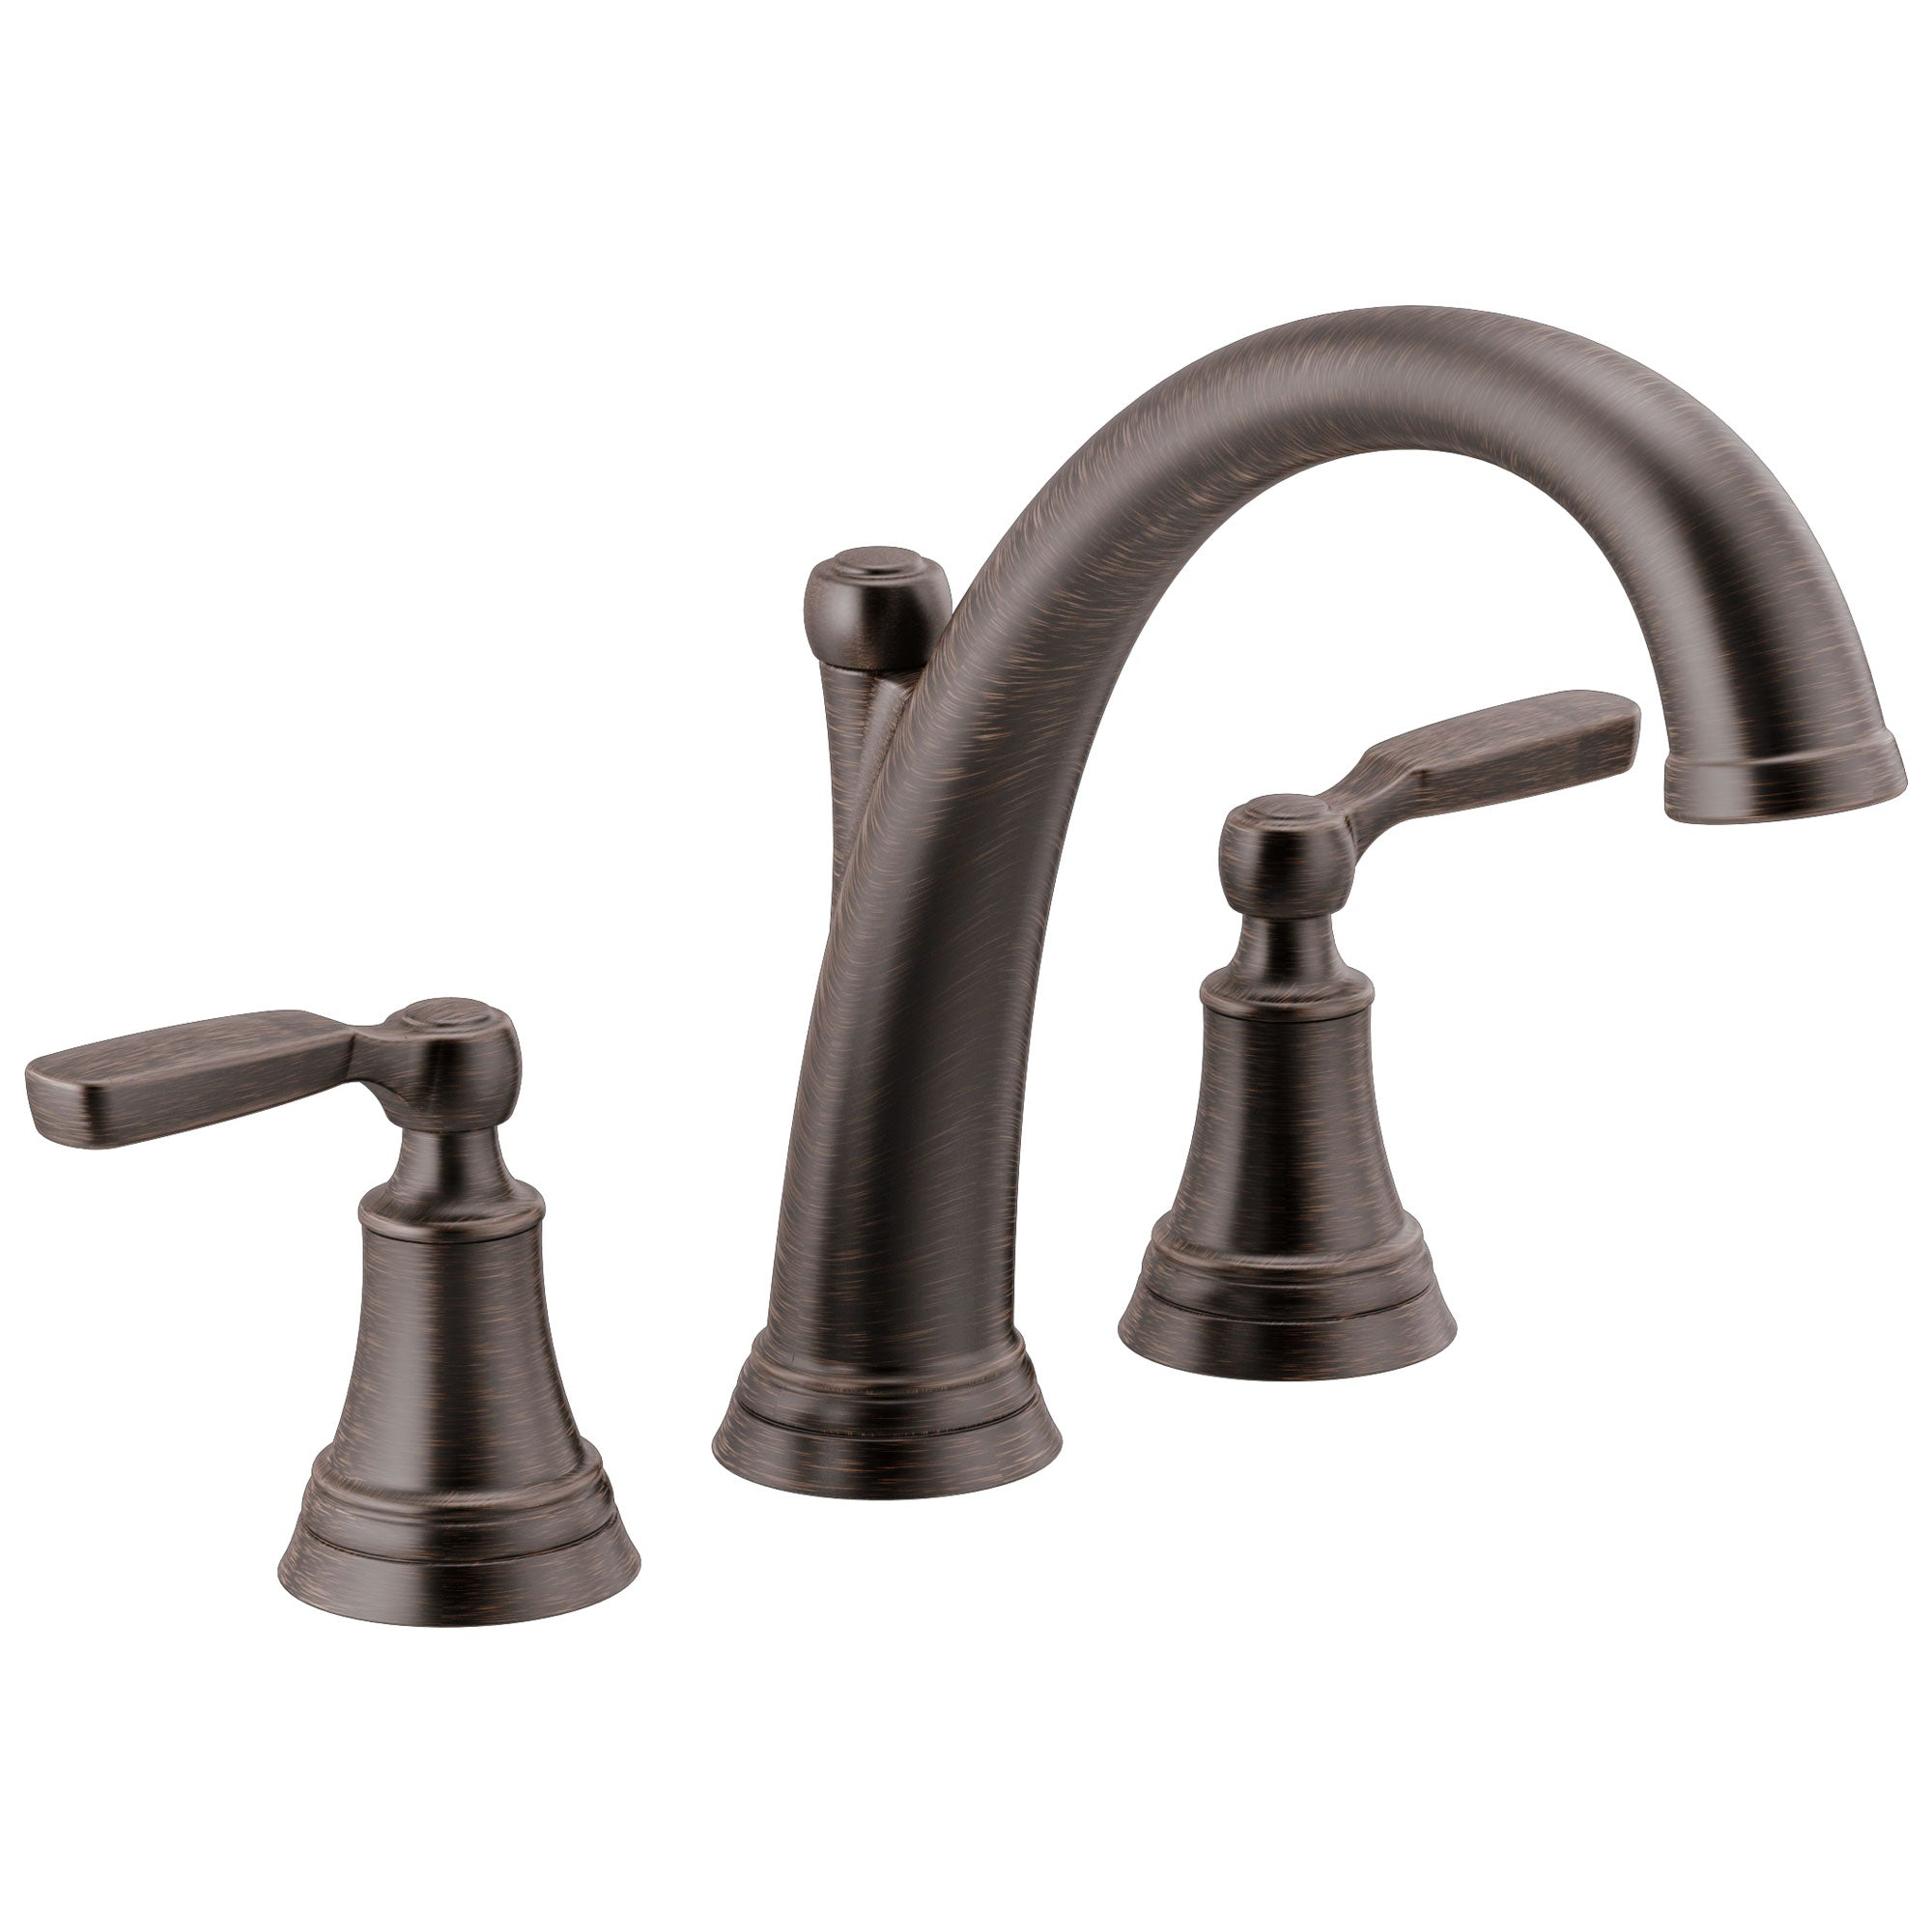 Delta Woodhurst Venetian Bronze Finish Roman Tub Filler Faucet Trim Kit (Requires Valve) DT2732RB